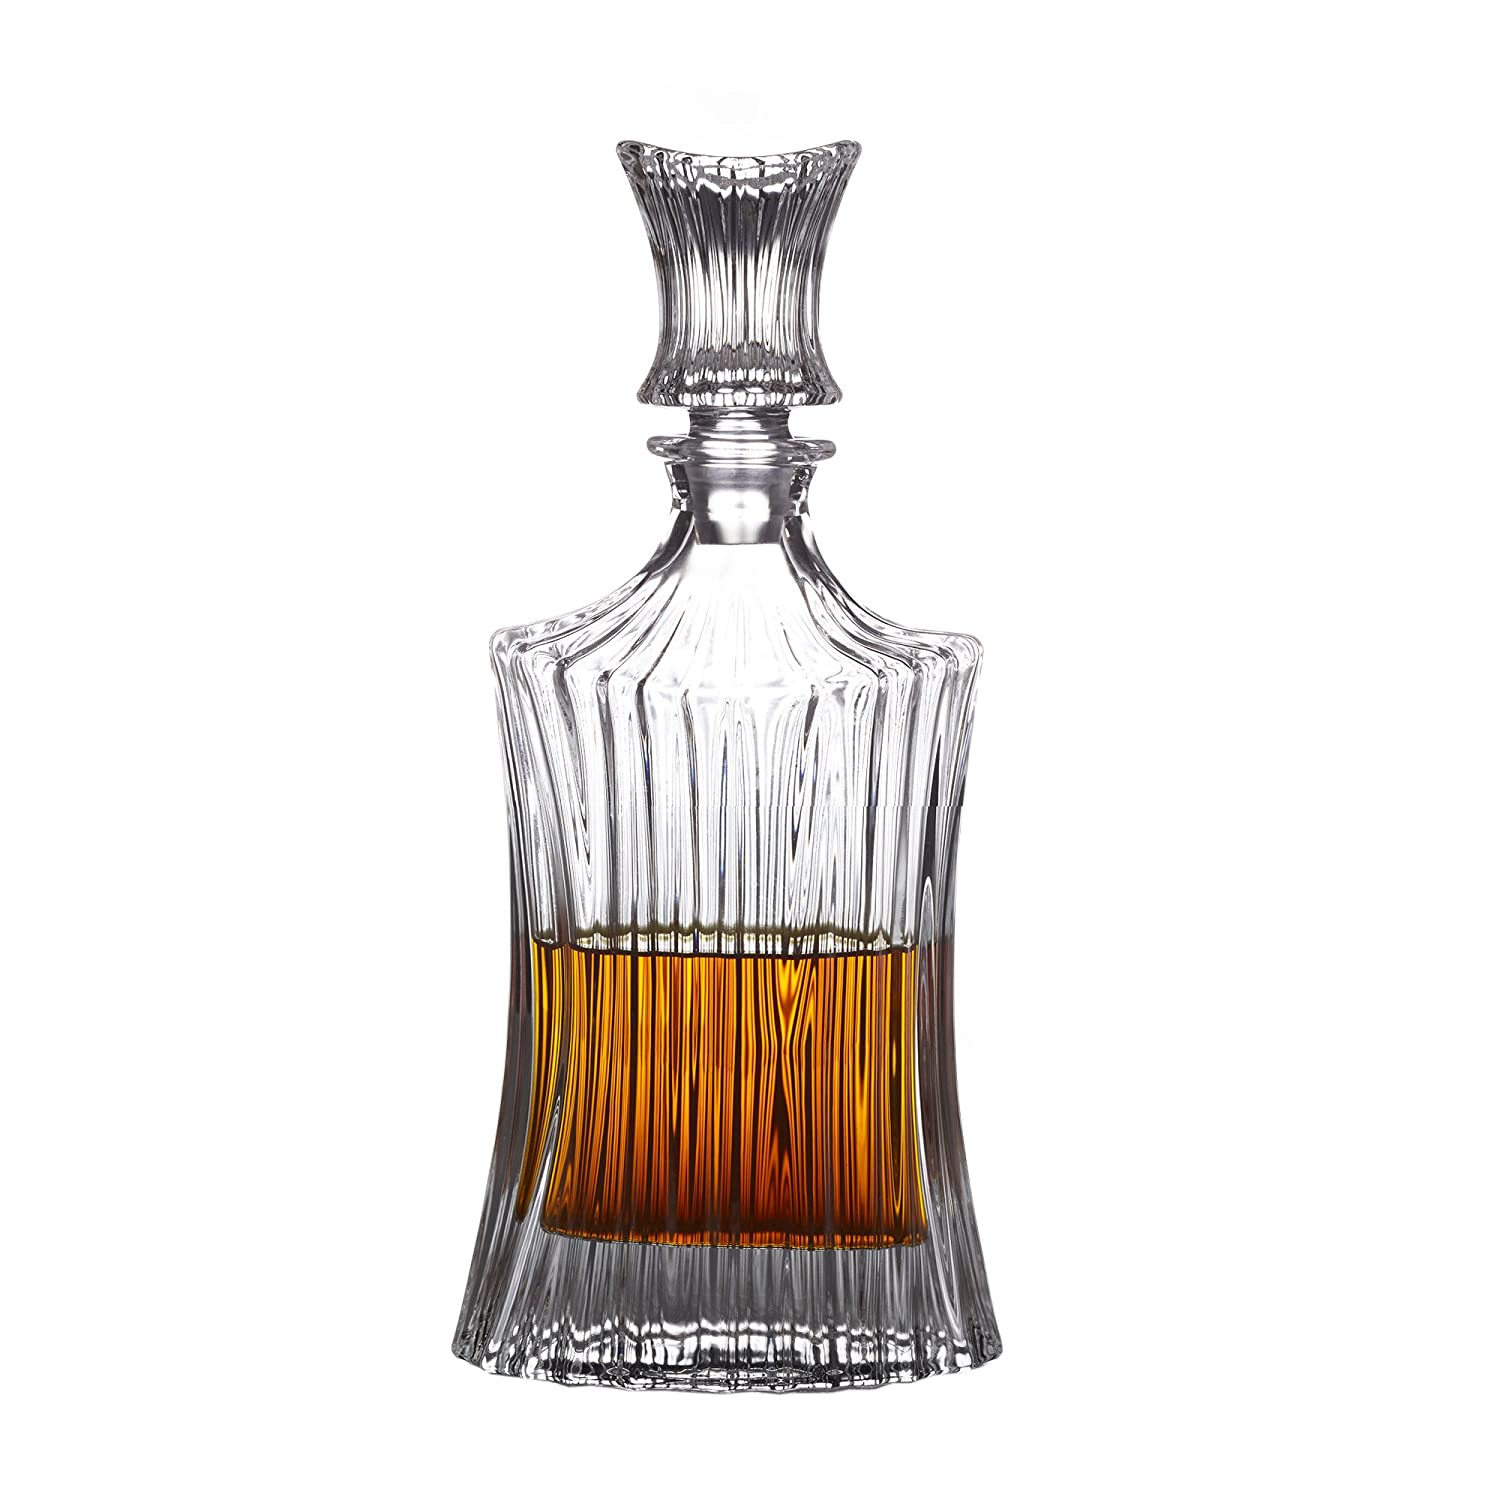 amazon com fitz and floyd 306054 gb augusta liquor decanter